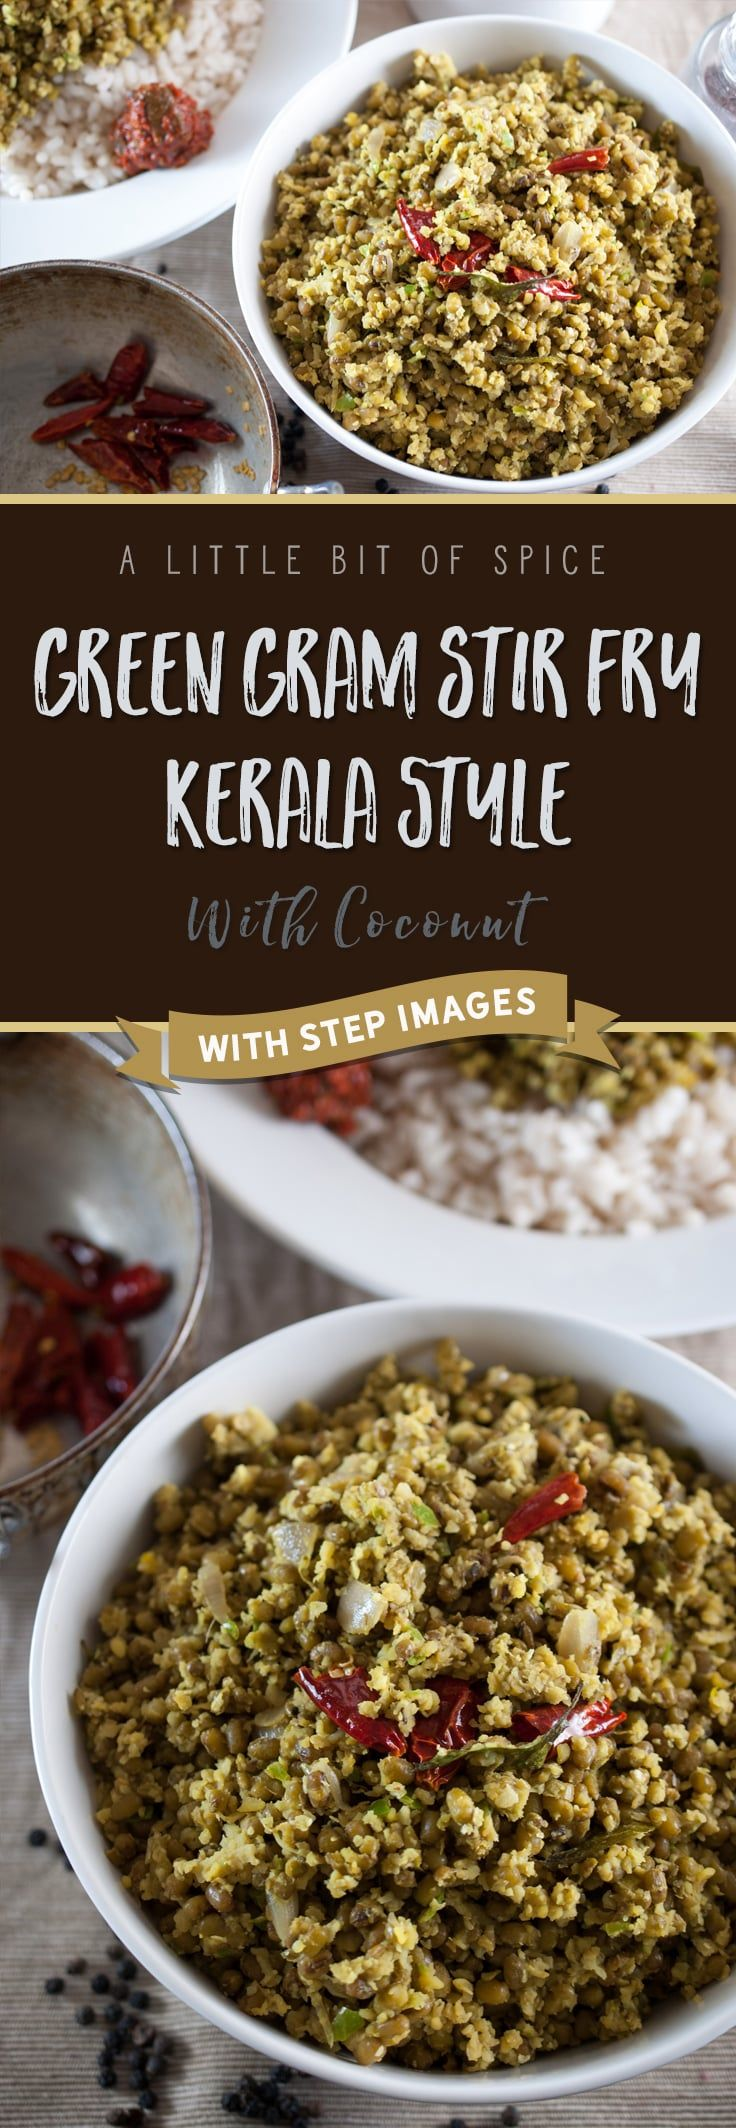 Mung bean stir fry with coconut, garlic and green chilly. A relatively simple Kerala side dish - prepared together with rice/rice porridge/kanji for lunch. A comfort food and a very common dish at Kerala homes.